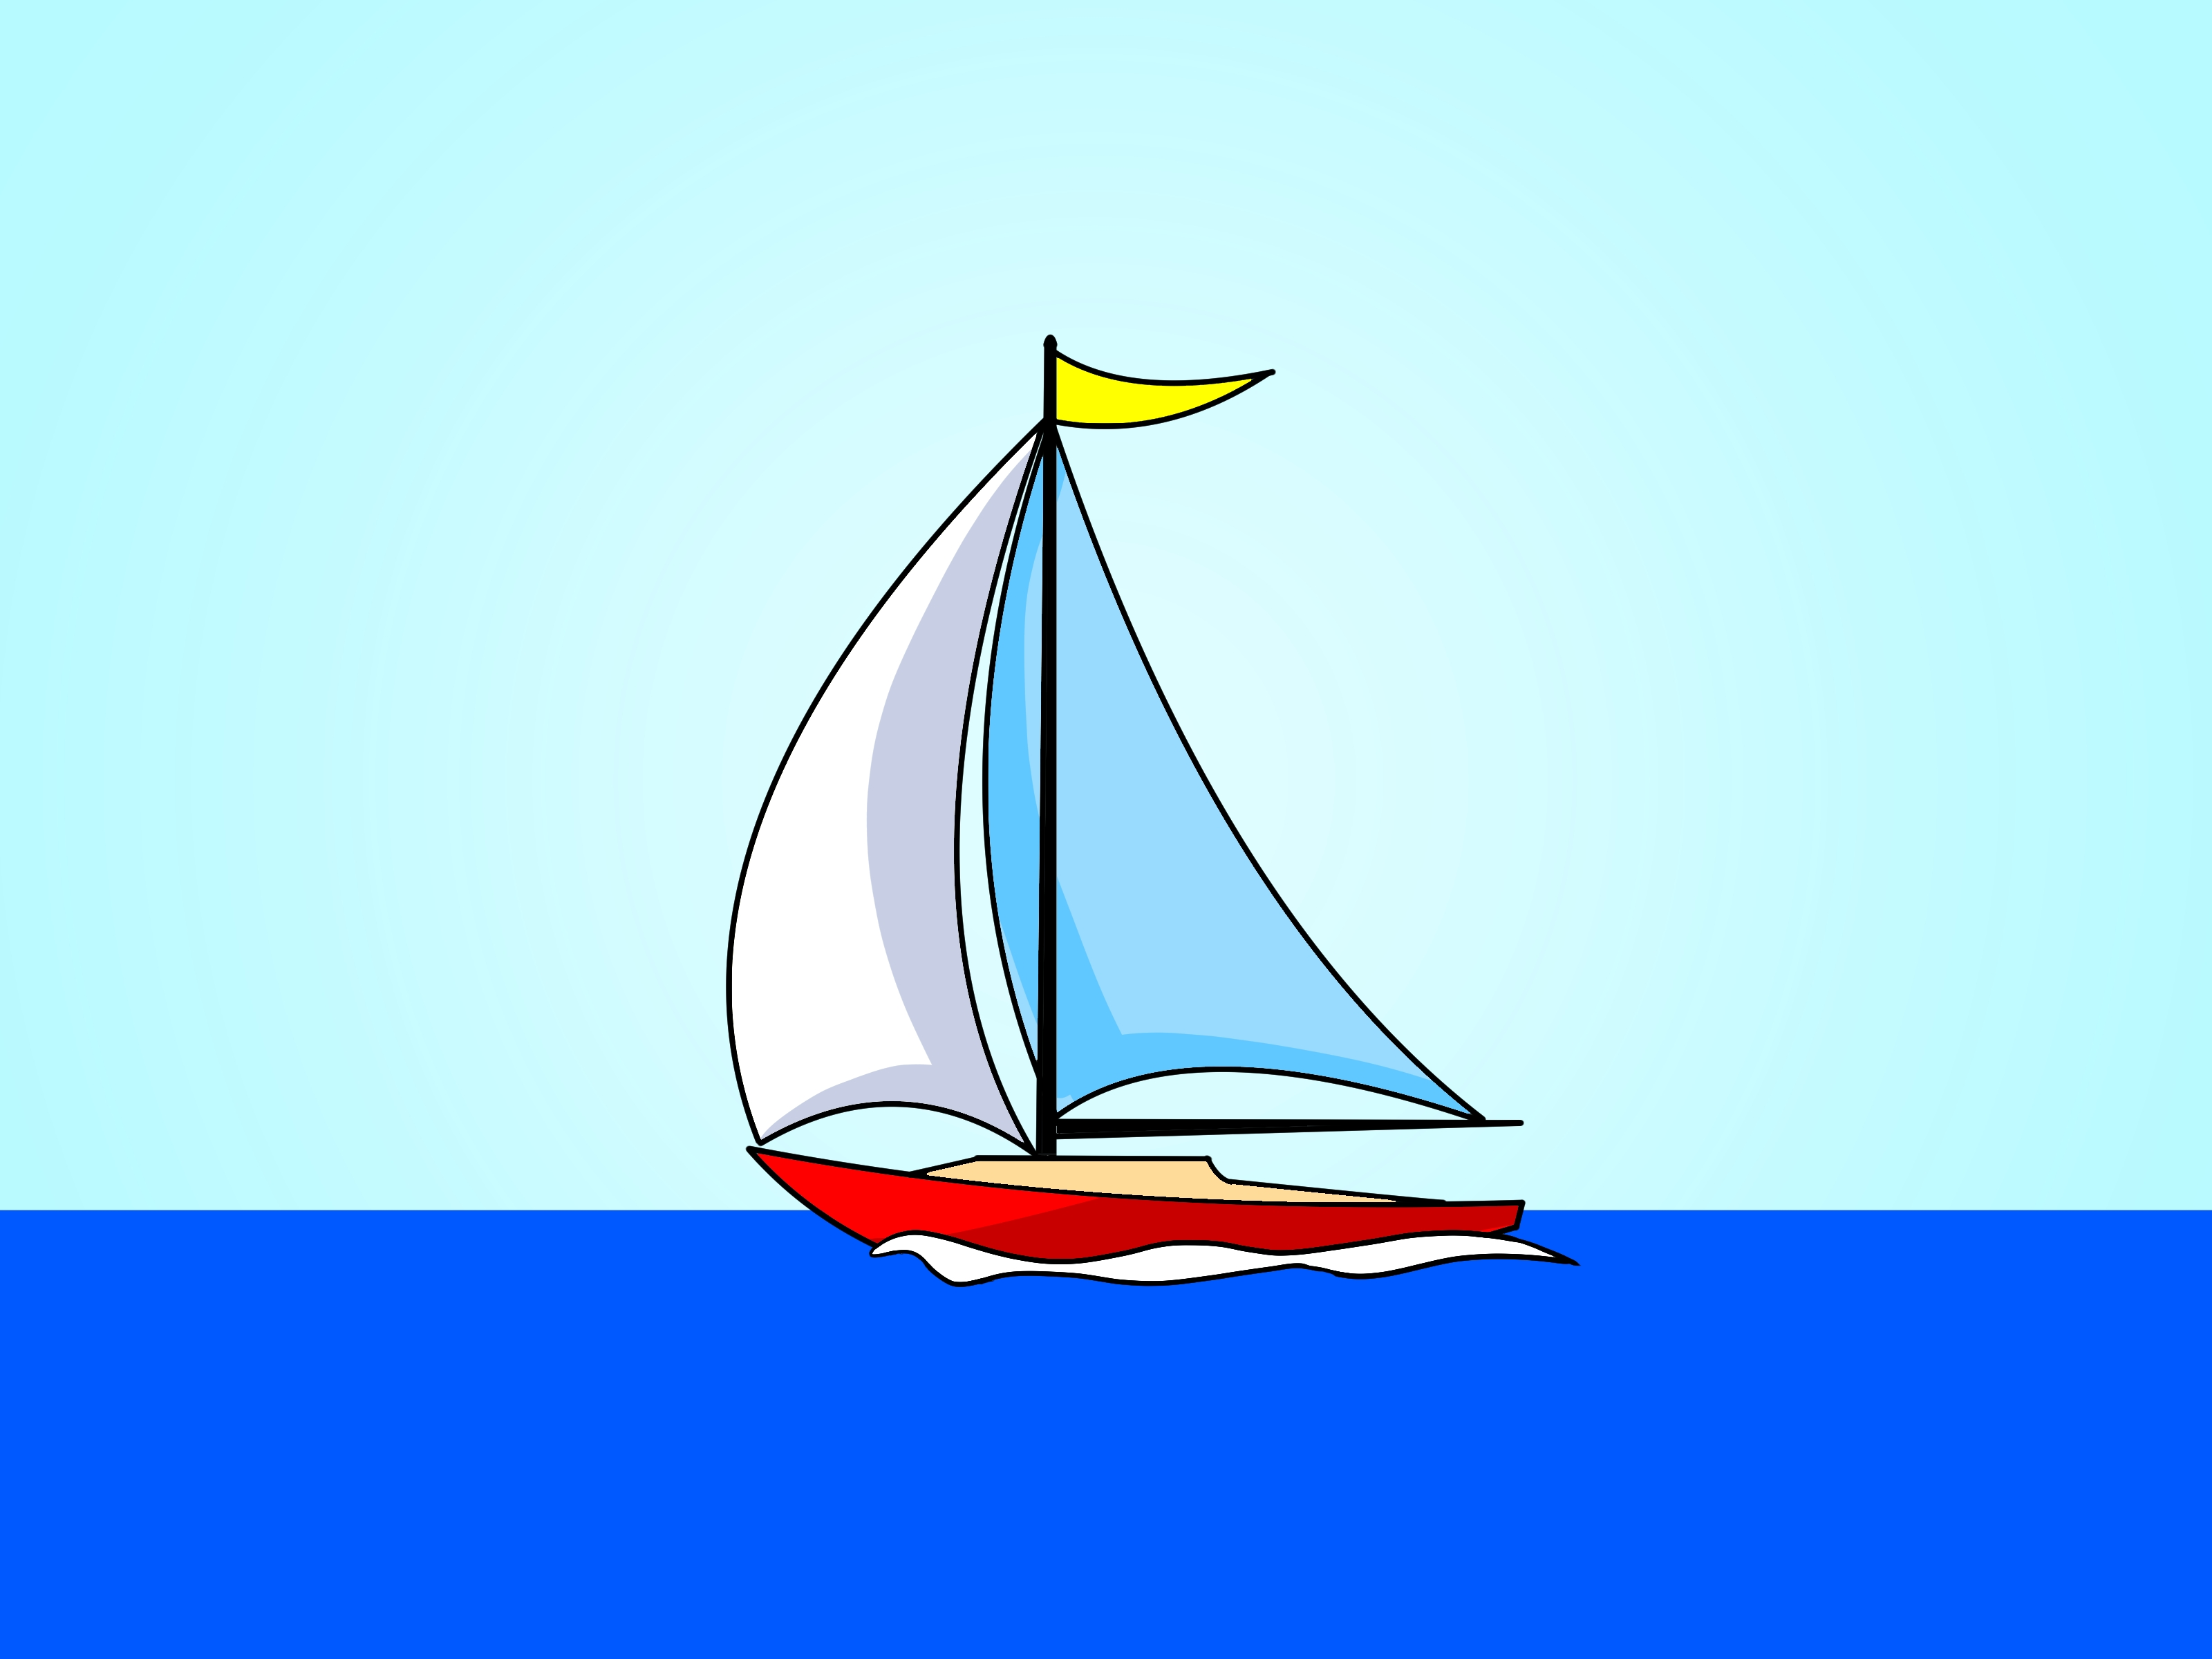 clipart free download Free sailboat pictures for. Yacht clipart kid